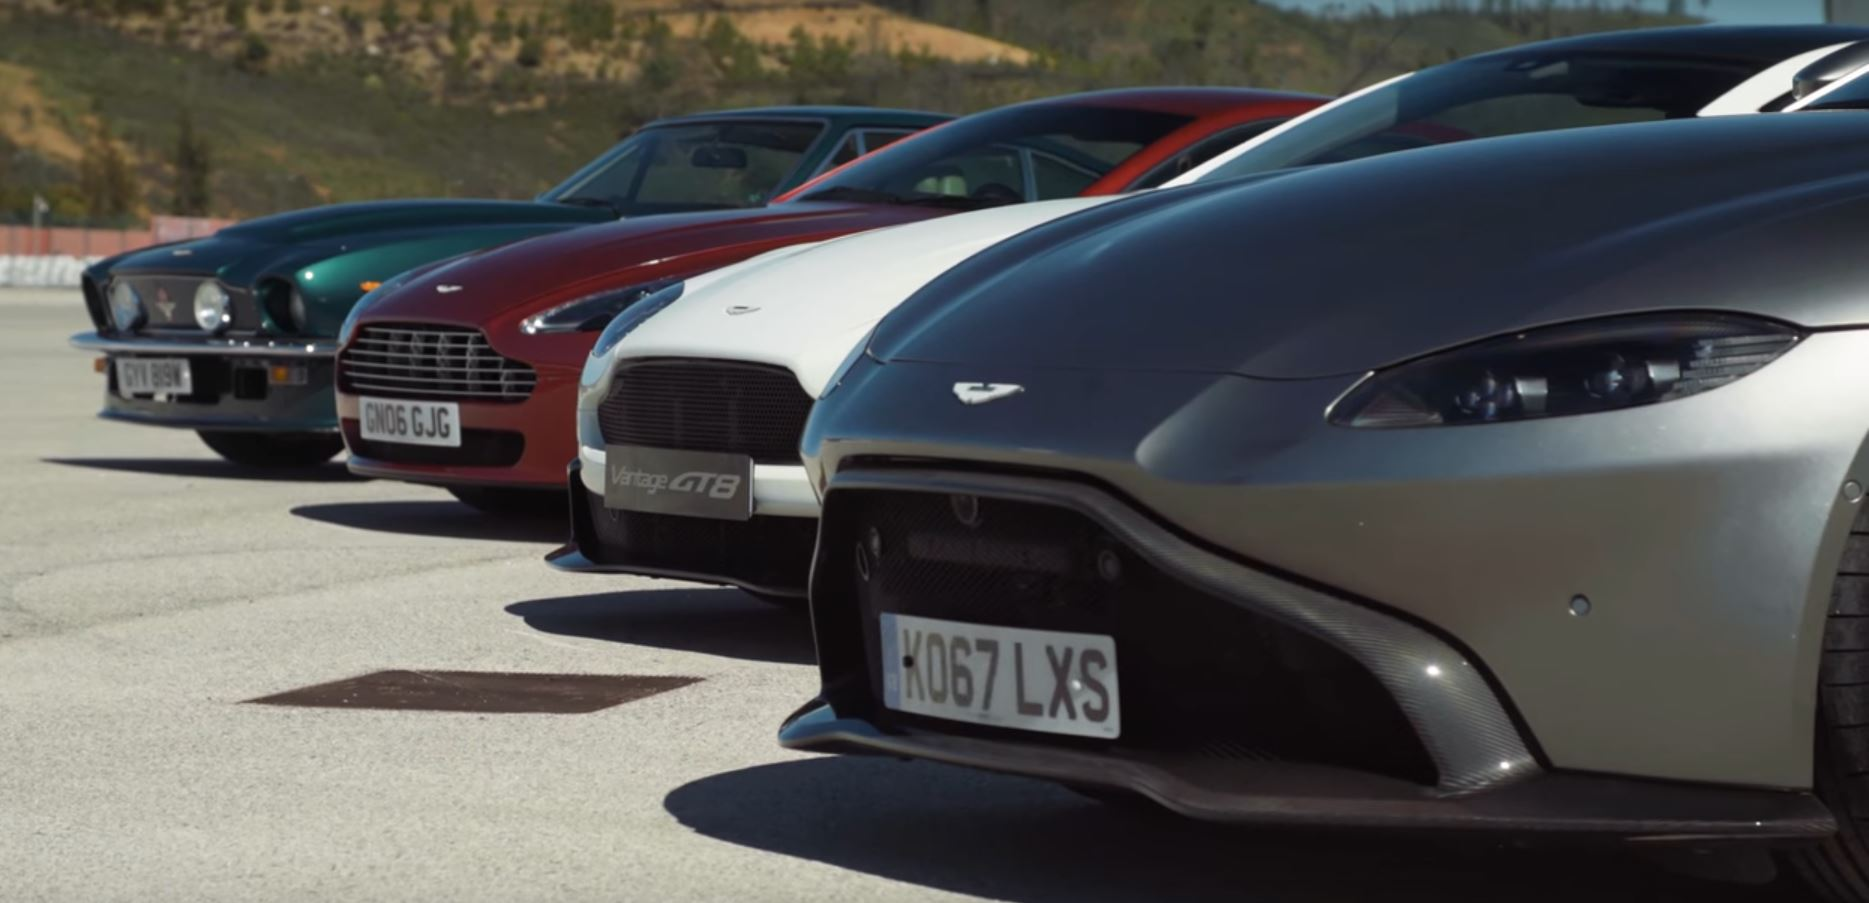 New Aston Martin >> All New Aston Martin Vantage Reviewed Against Previous